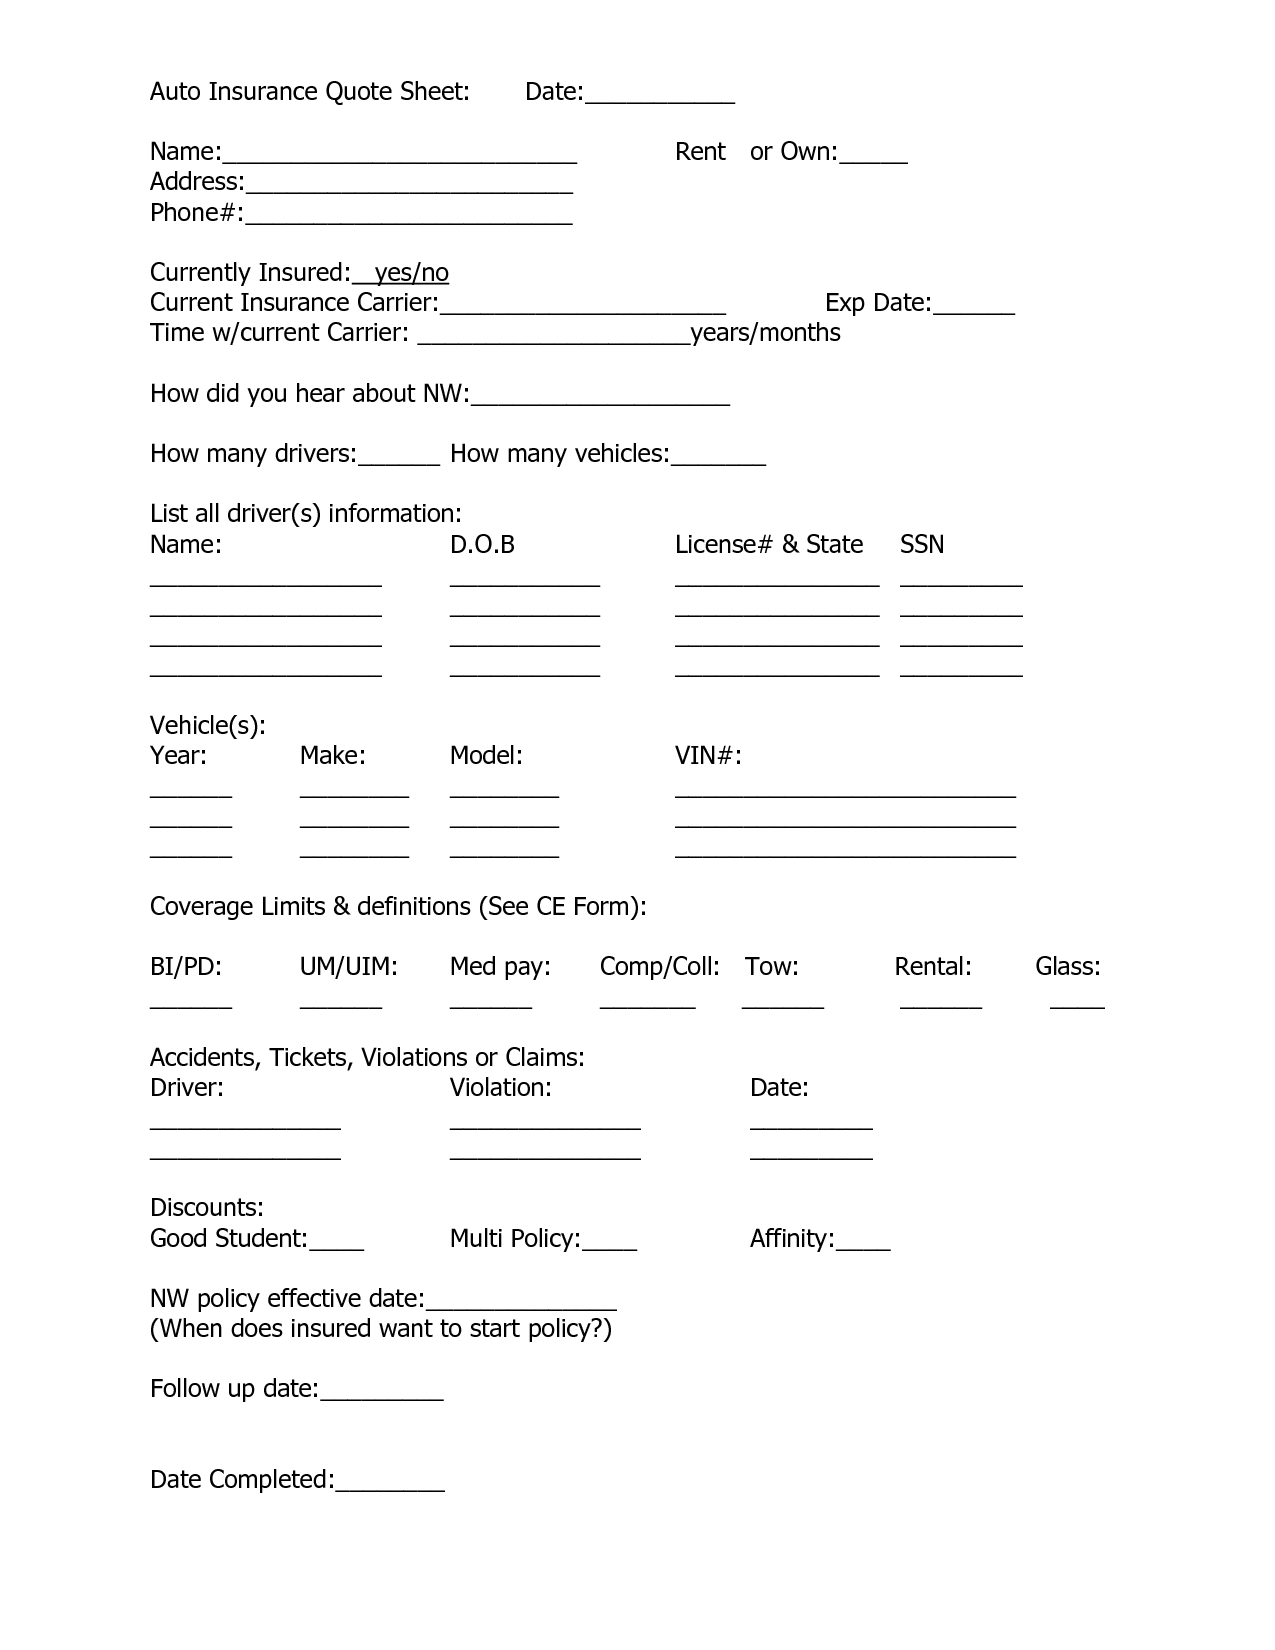 home insurance quote sheet template_10